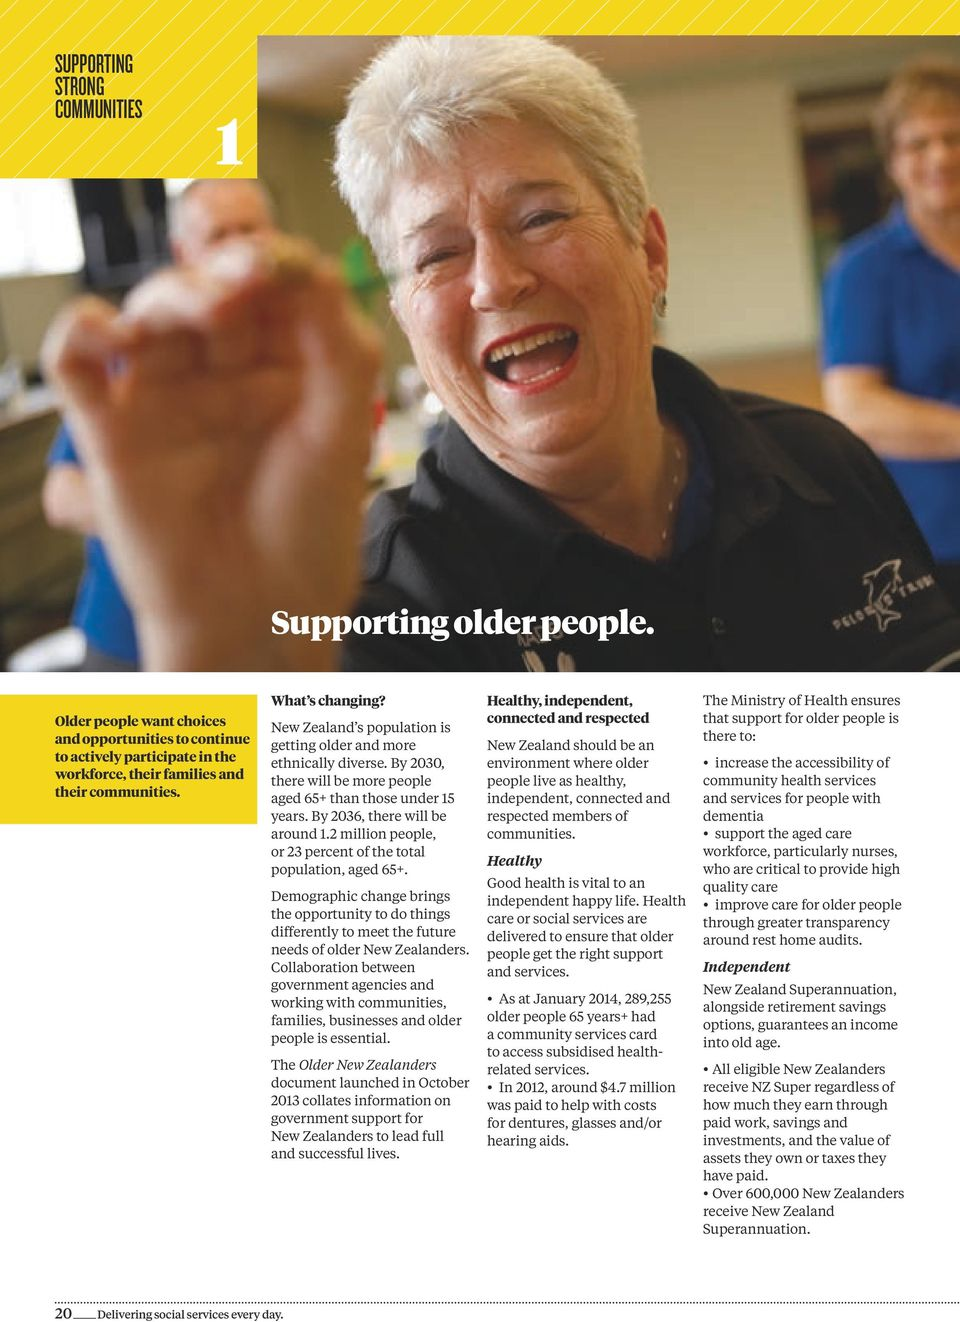 2 million people, or 23 percent of the total population, aged 65+. Demographic change brings the opportunity to do things differently to meet the future needs of older New Zealanders.